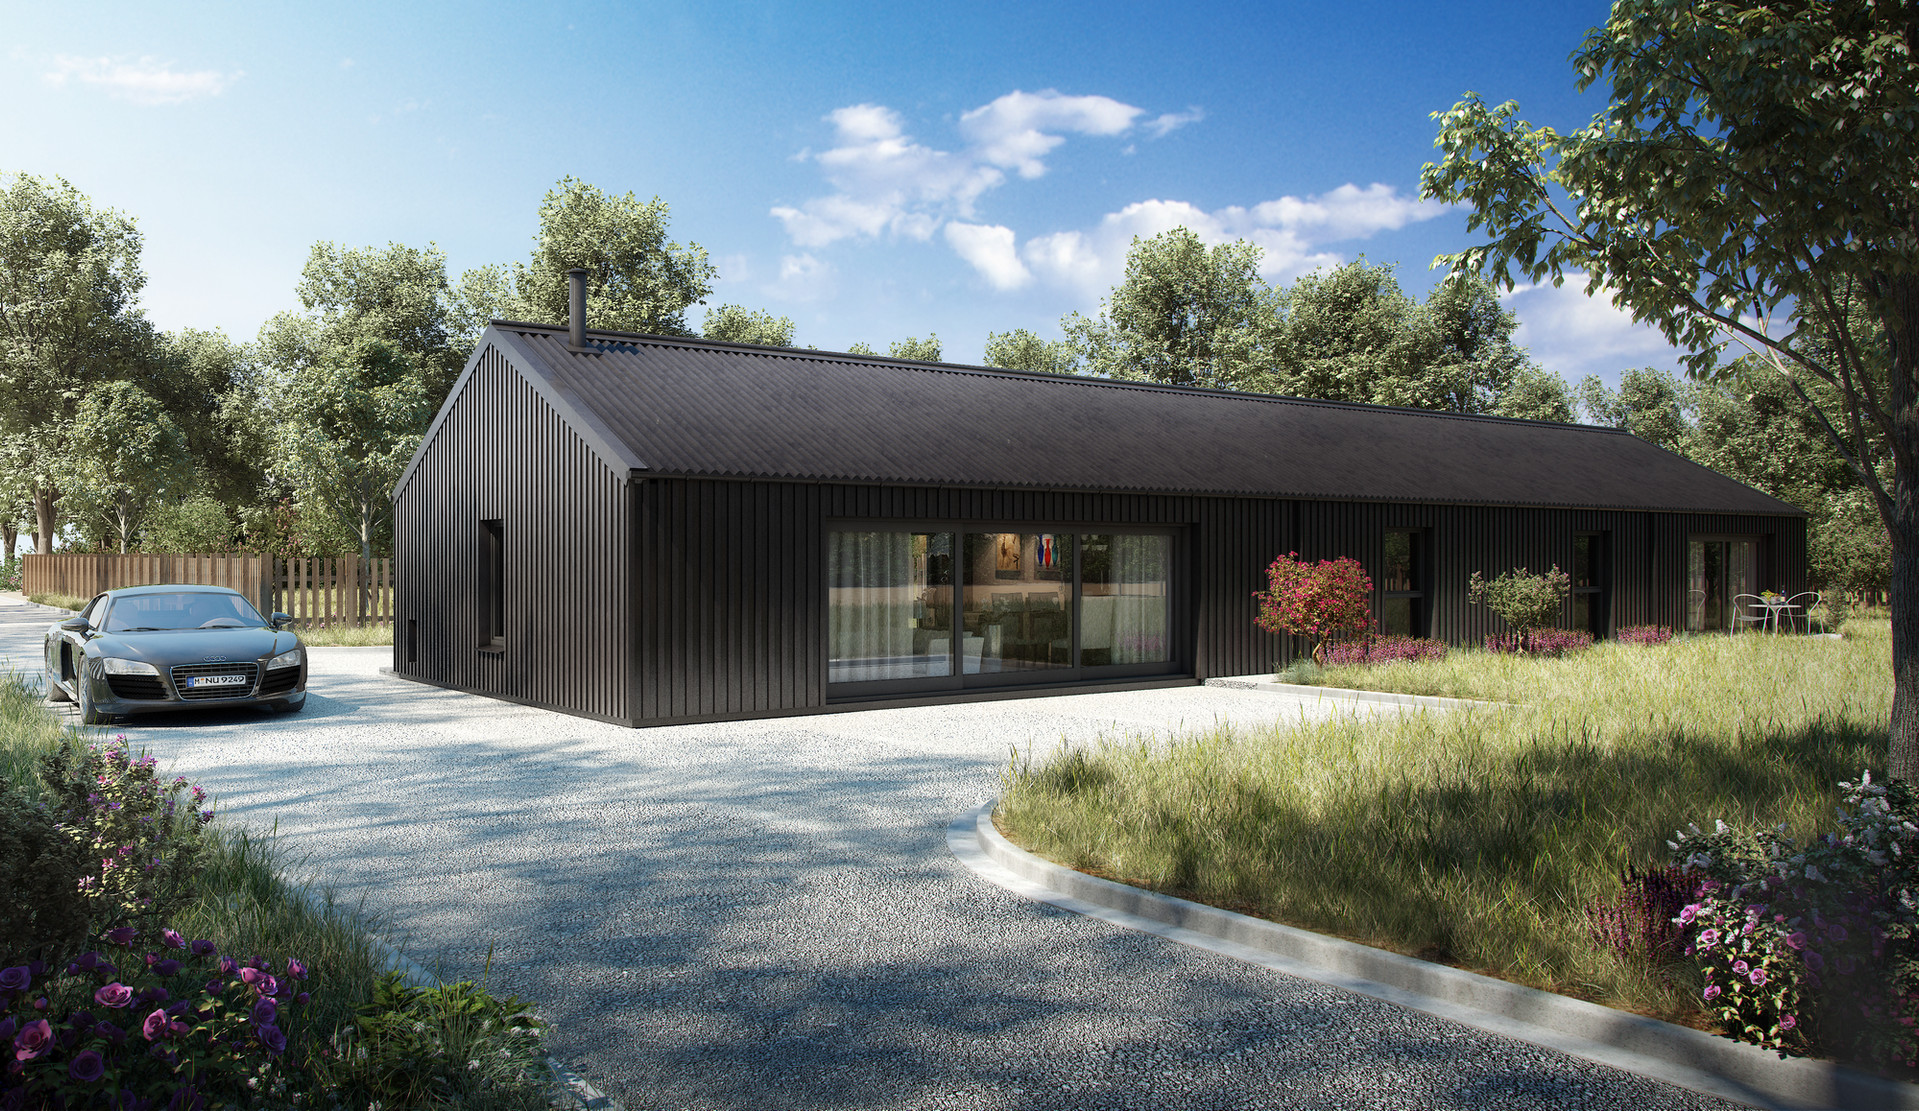 Externally the windows and doors are black stained timber and the walls are clad in black stained vertical timber cladding. The roof is black Big 6 profiled cement sheeting on a traditional timber roof structure. Overall the property is highly insulated and heated using an air source heat pump